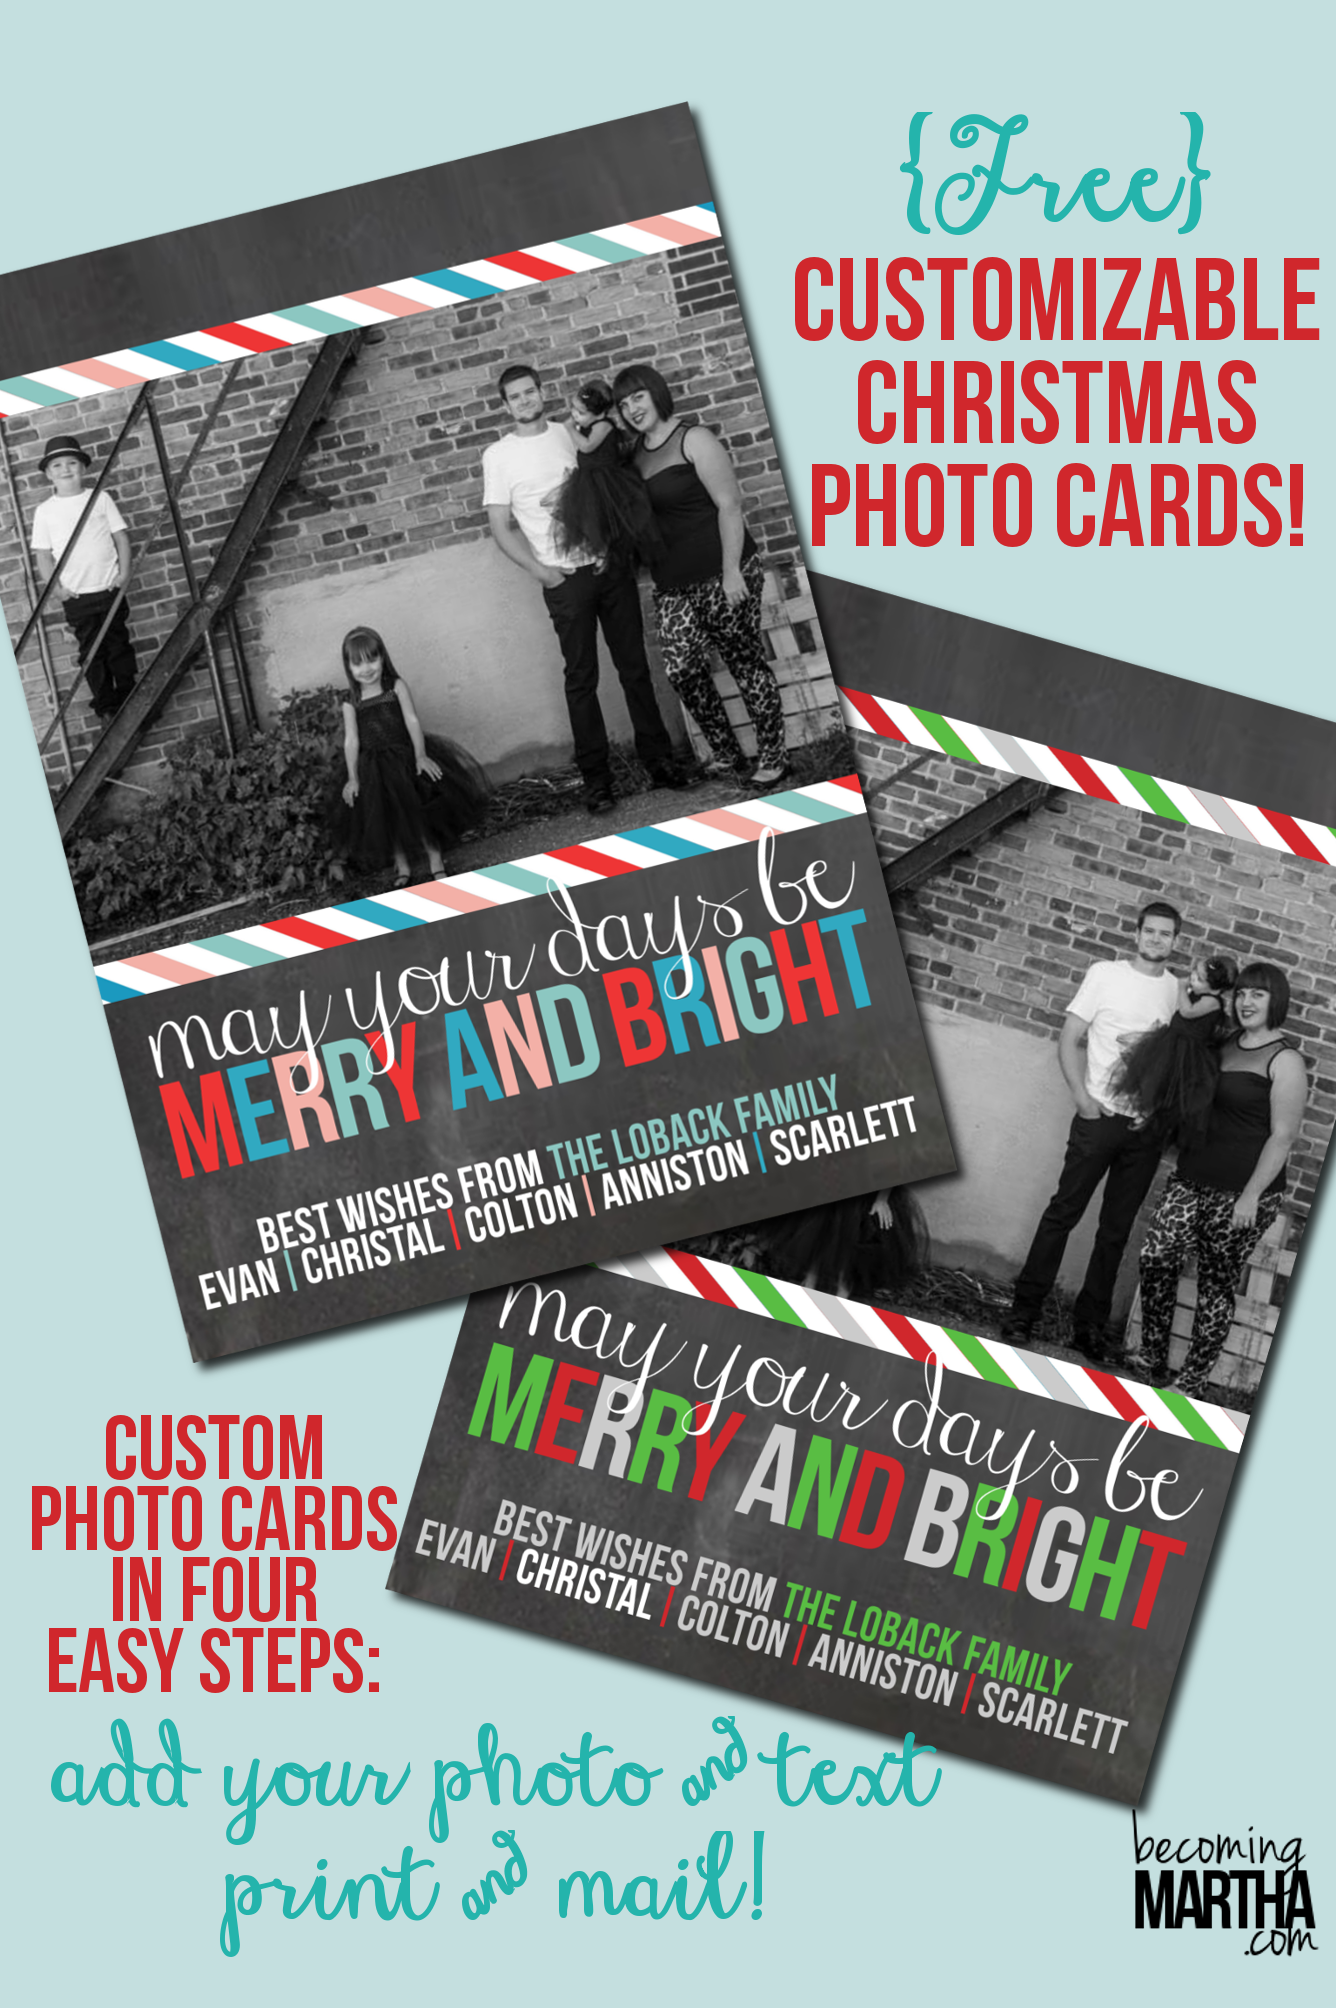 21 How To Create 21X21 Christmas Card Template Free Maker by 21X21 Within 4x6 Photo Card Template Free